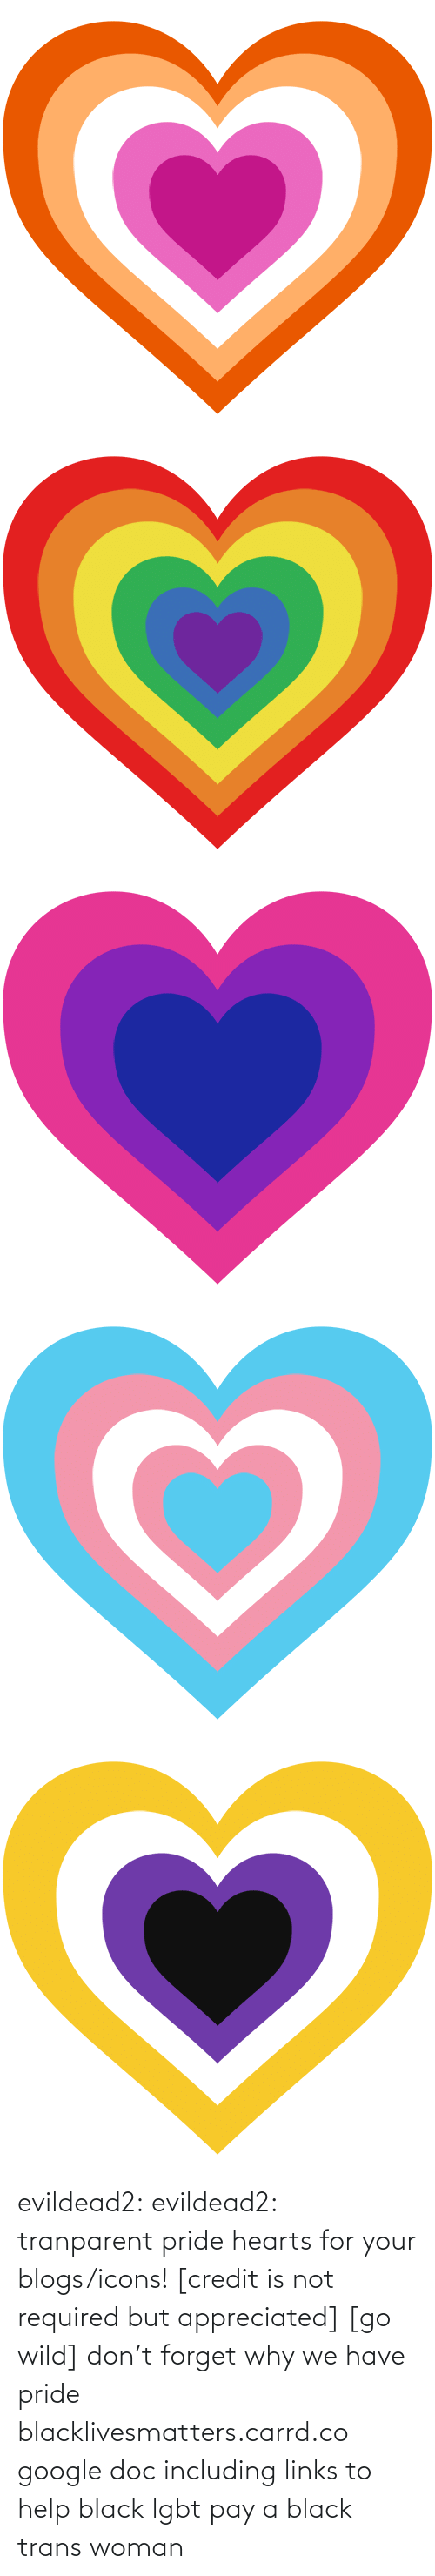 Credit: evildead2:  evildead2:  tranparent pride hearts for your blogs/icons! [credit is not required but appreciated] [go wild]      don't forget why we have pride  blacklivesmatters.carrd.co  google doc including links to help black lgbt pay a black trans woman